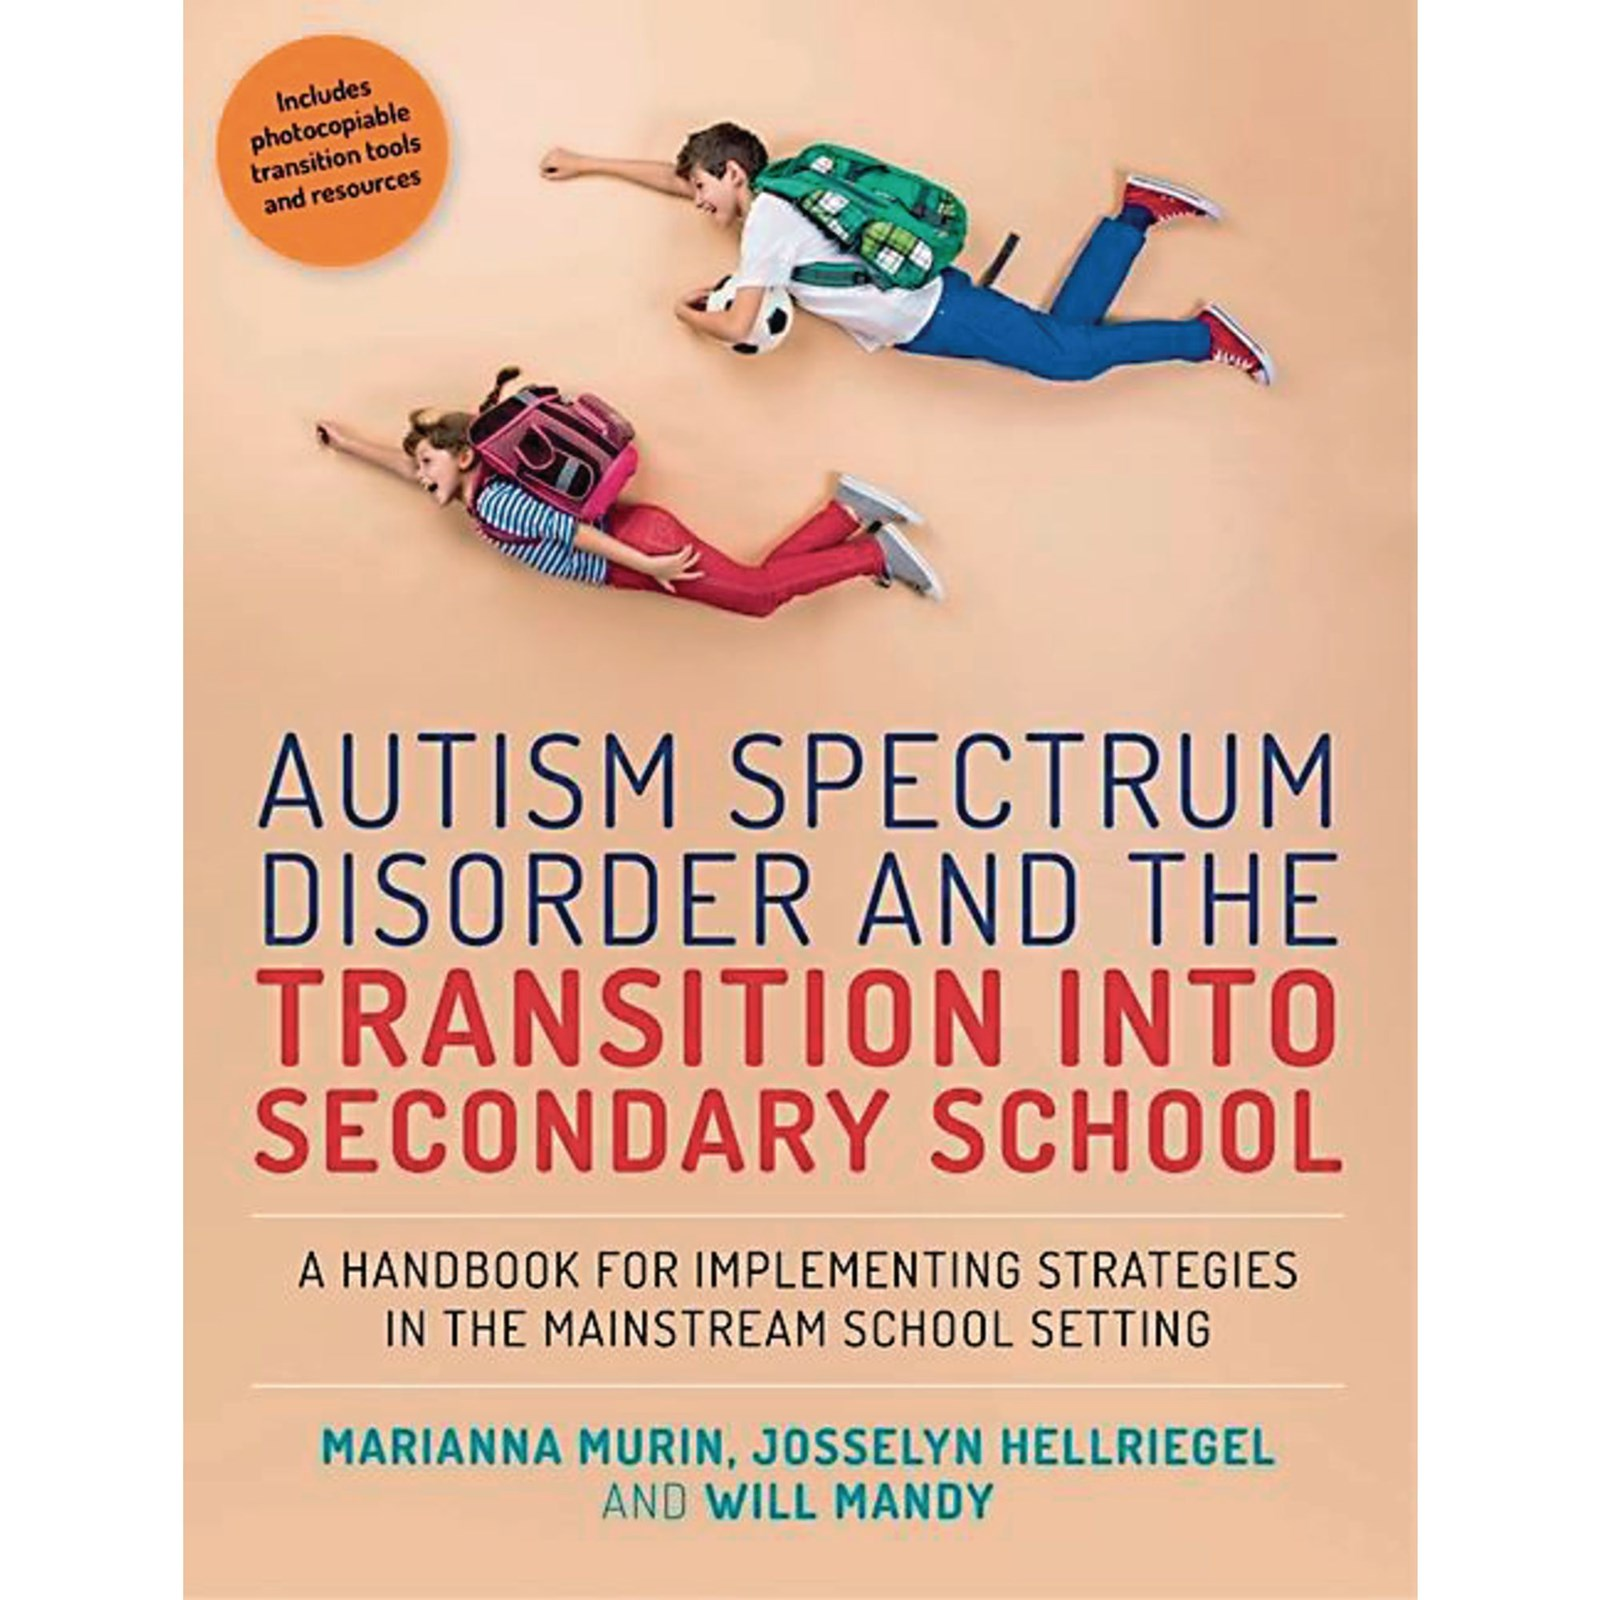 ASD and Transition into Secondary